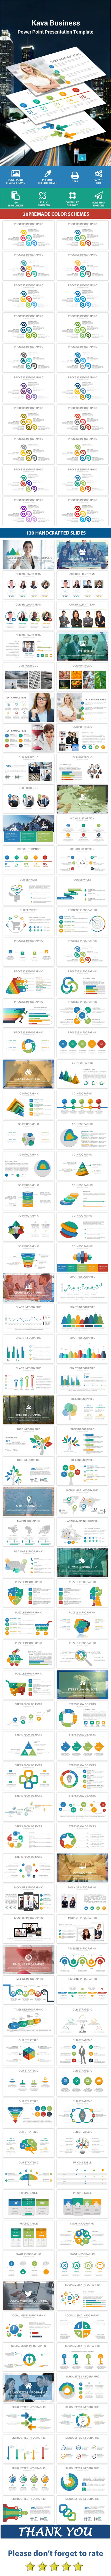 Kava Business PowerPoint Presentation Template - PowerPoint Templates Presentation Templates